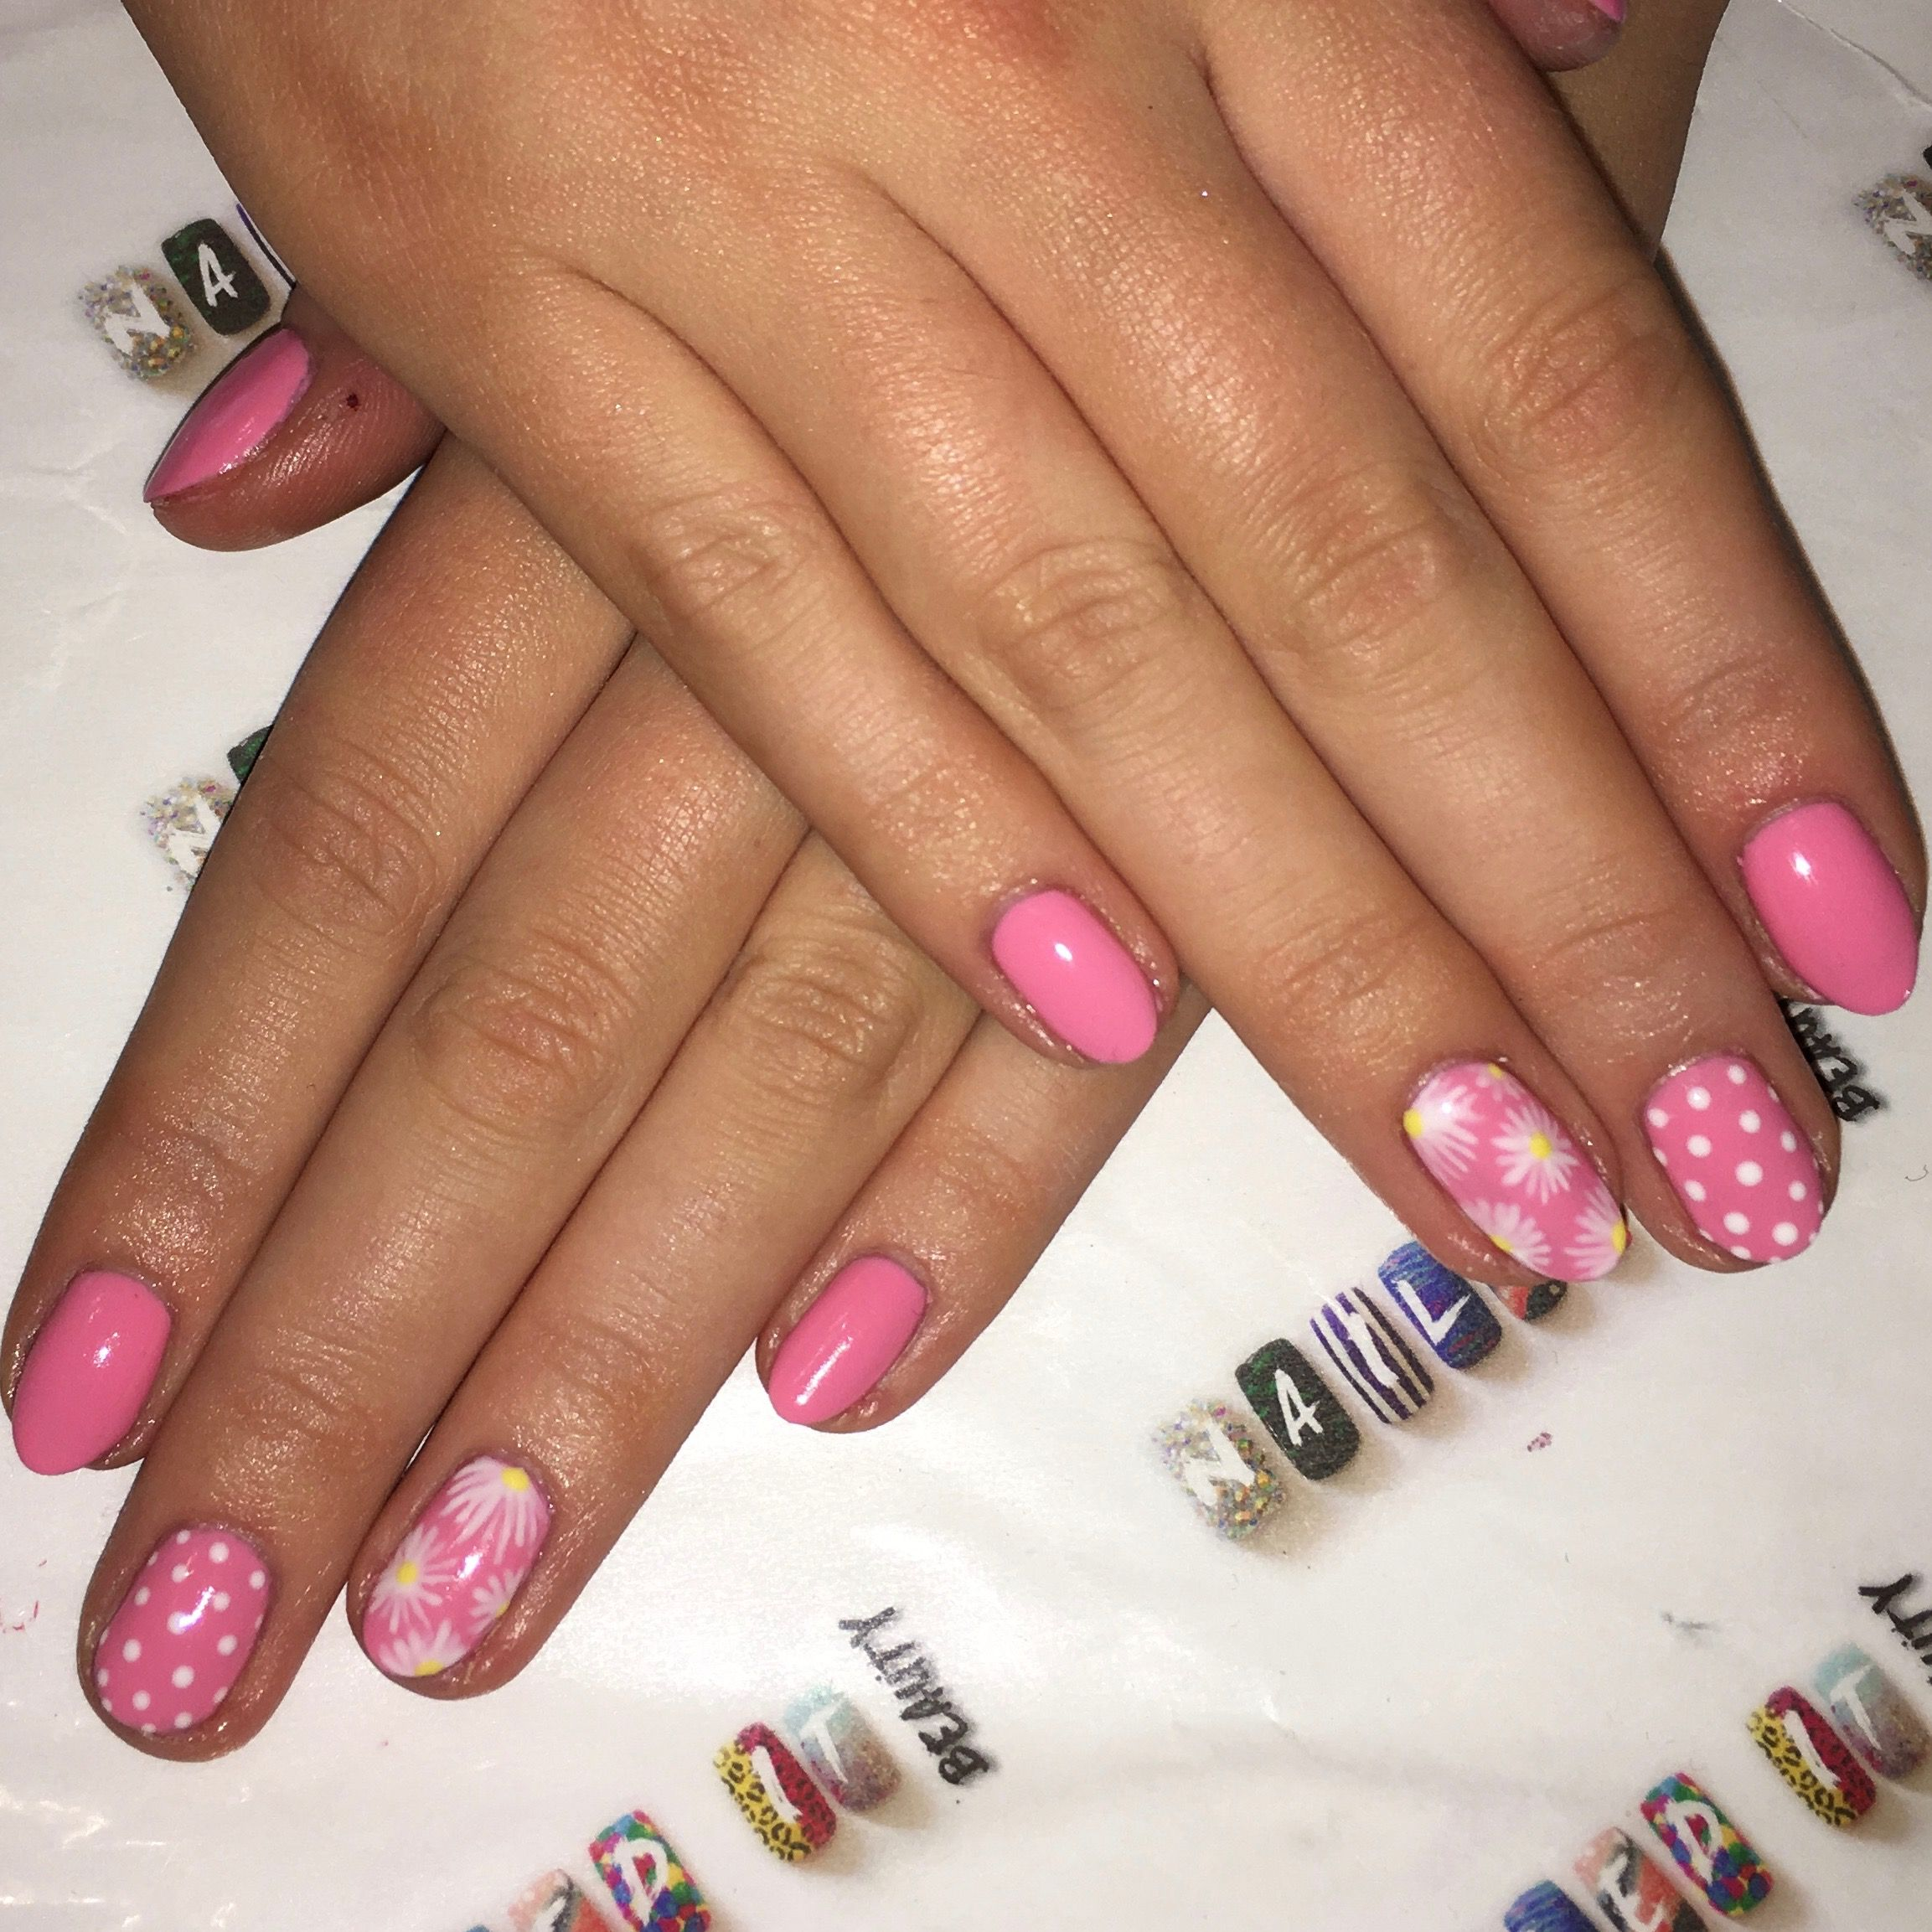 Pink spring gel polish nails with floral daisies and spotty nail art pink spring gel polish nails with floral daisies and spotty nail art izmirmasajfo